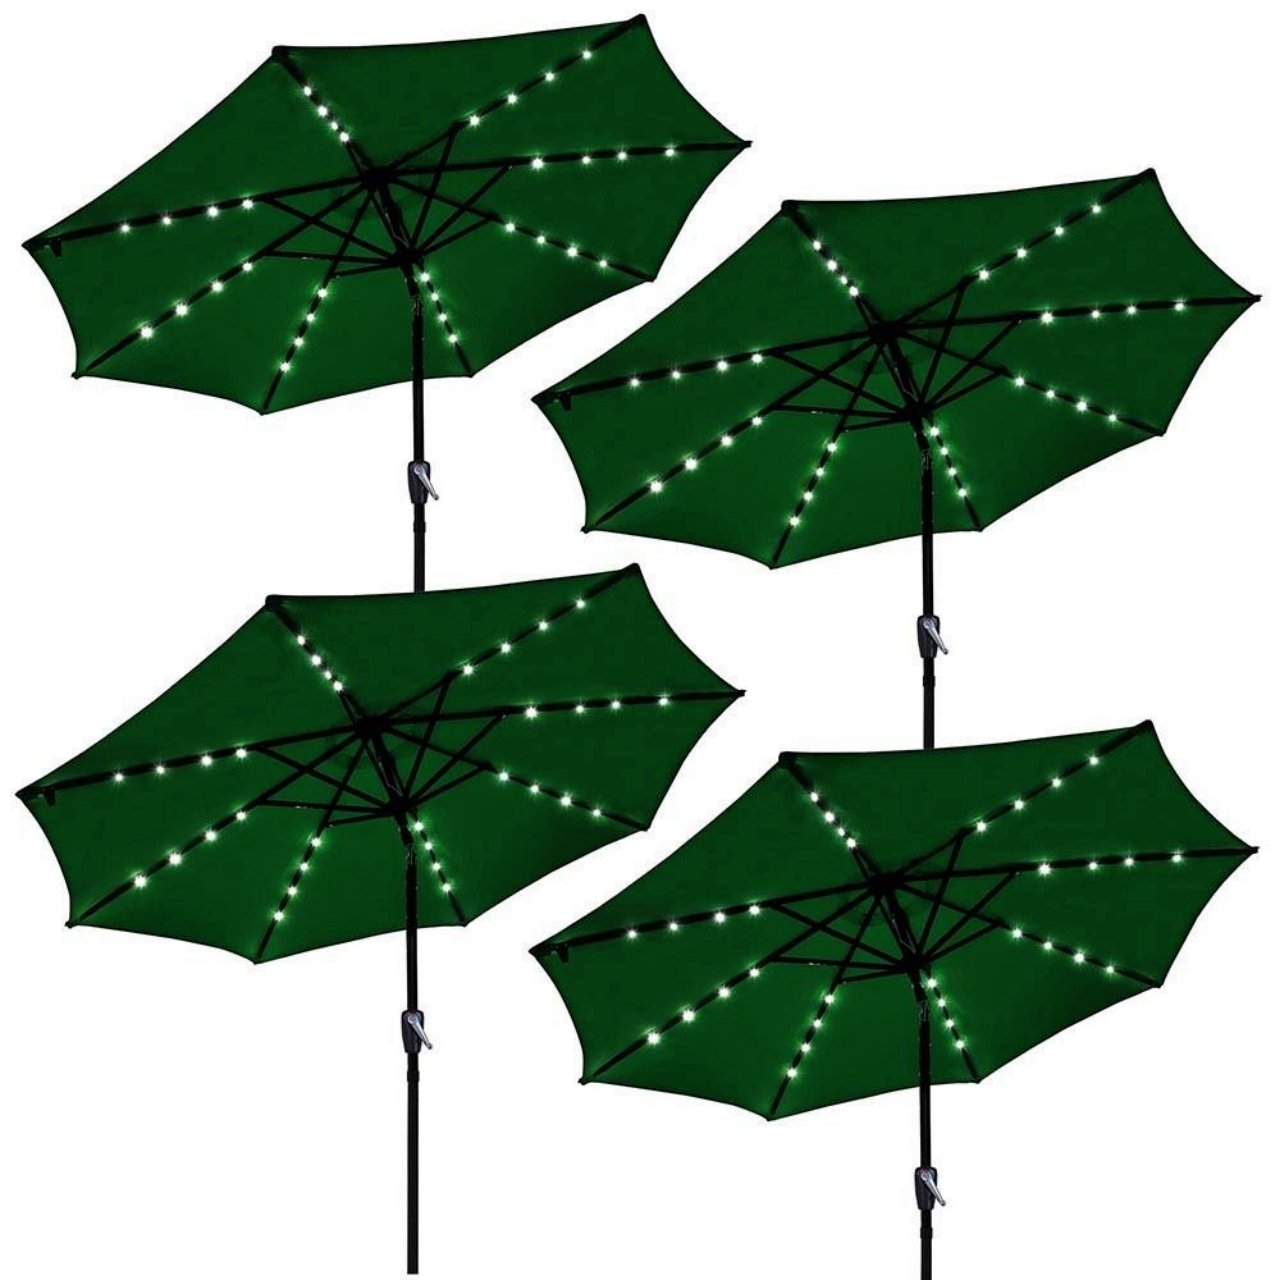 9ft Outdoor Patio Solar Power LED Aluminium Umbrella Sunshade UV Blocking Hand-Crank Tilt - Set of 4 Green #930